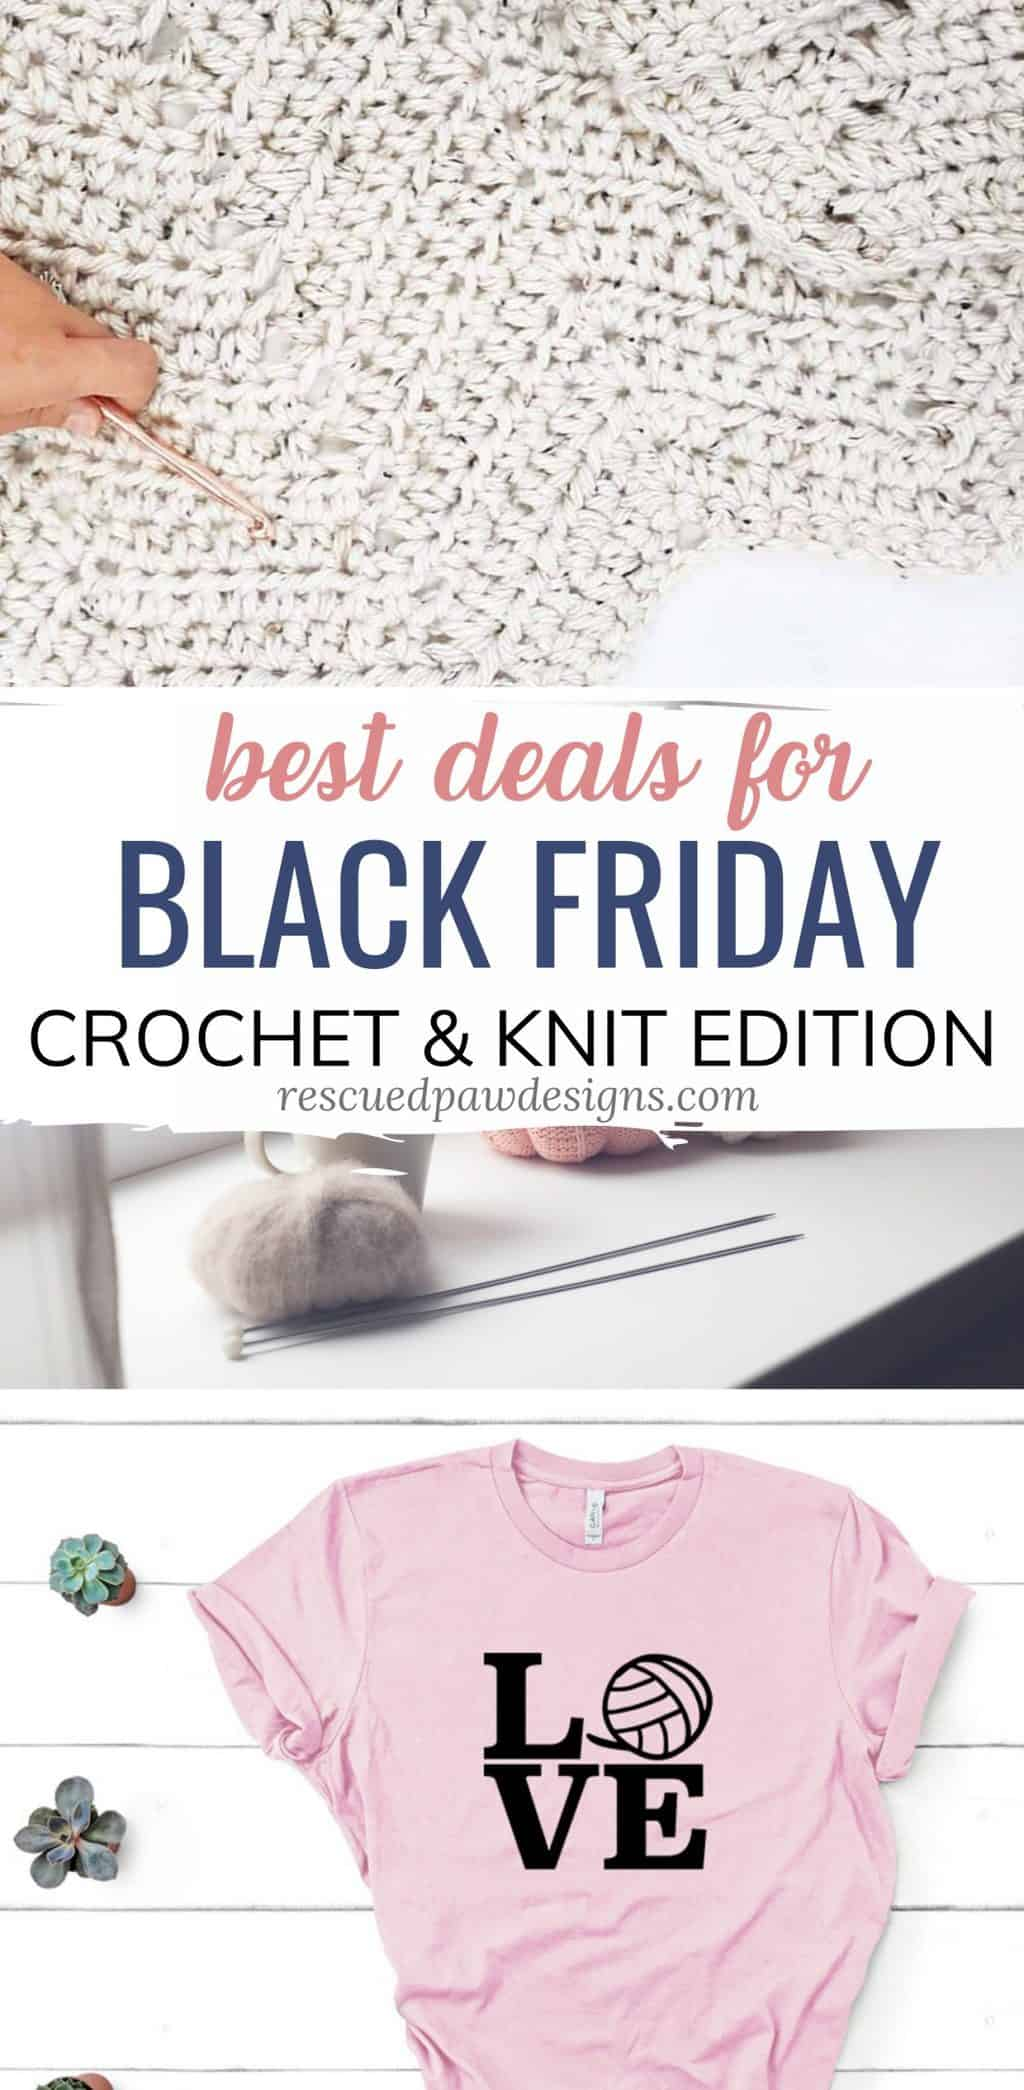 Crochet Black Friday Deals Knit Black Friday Deals